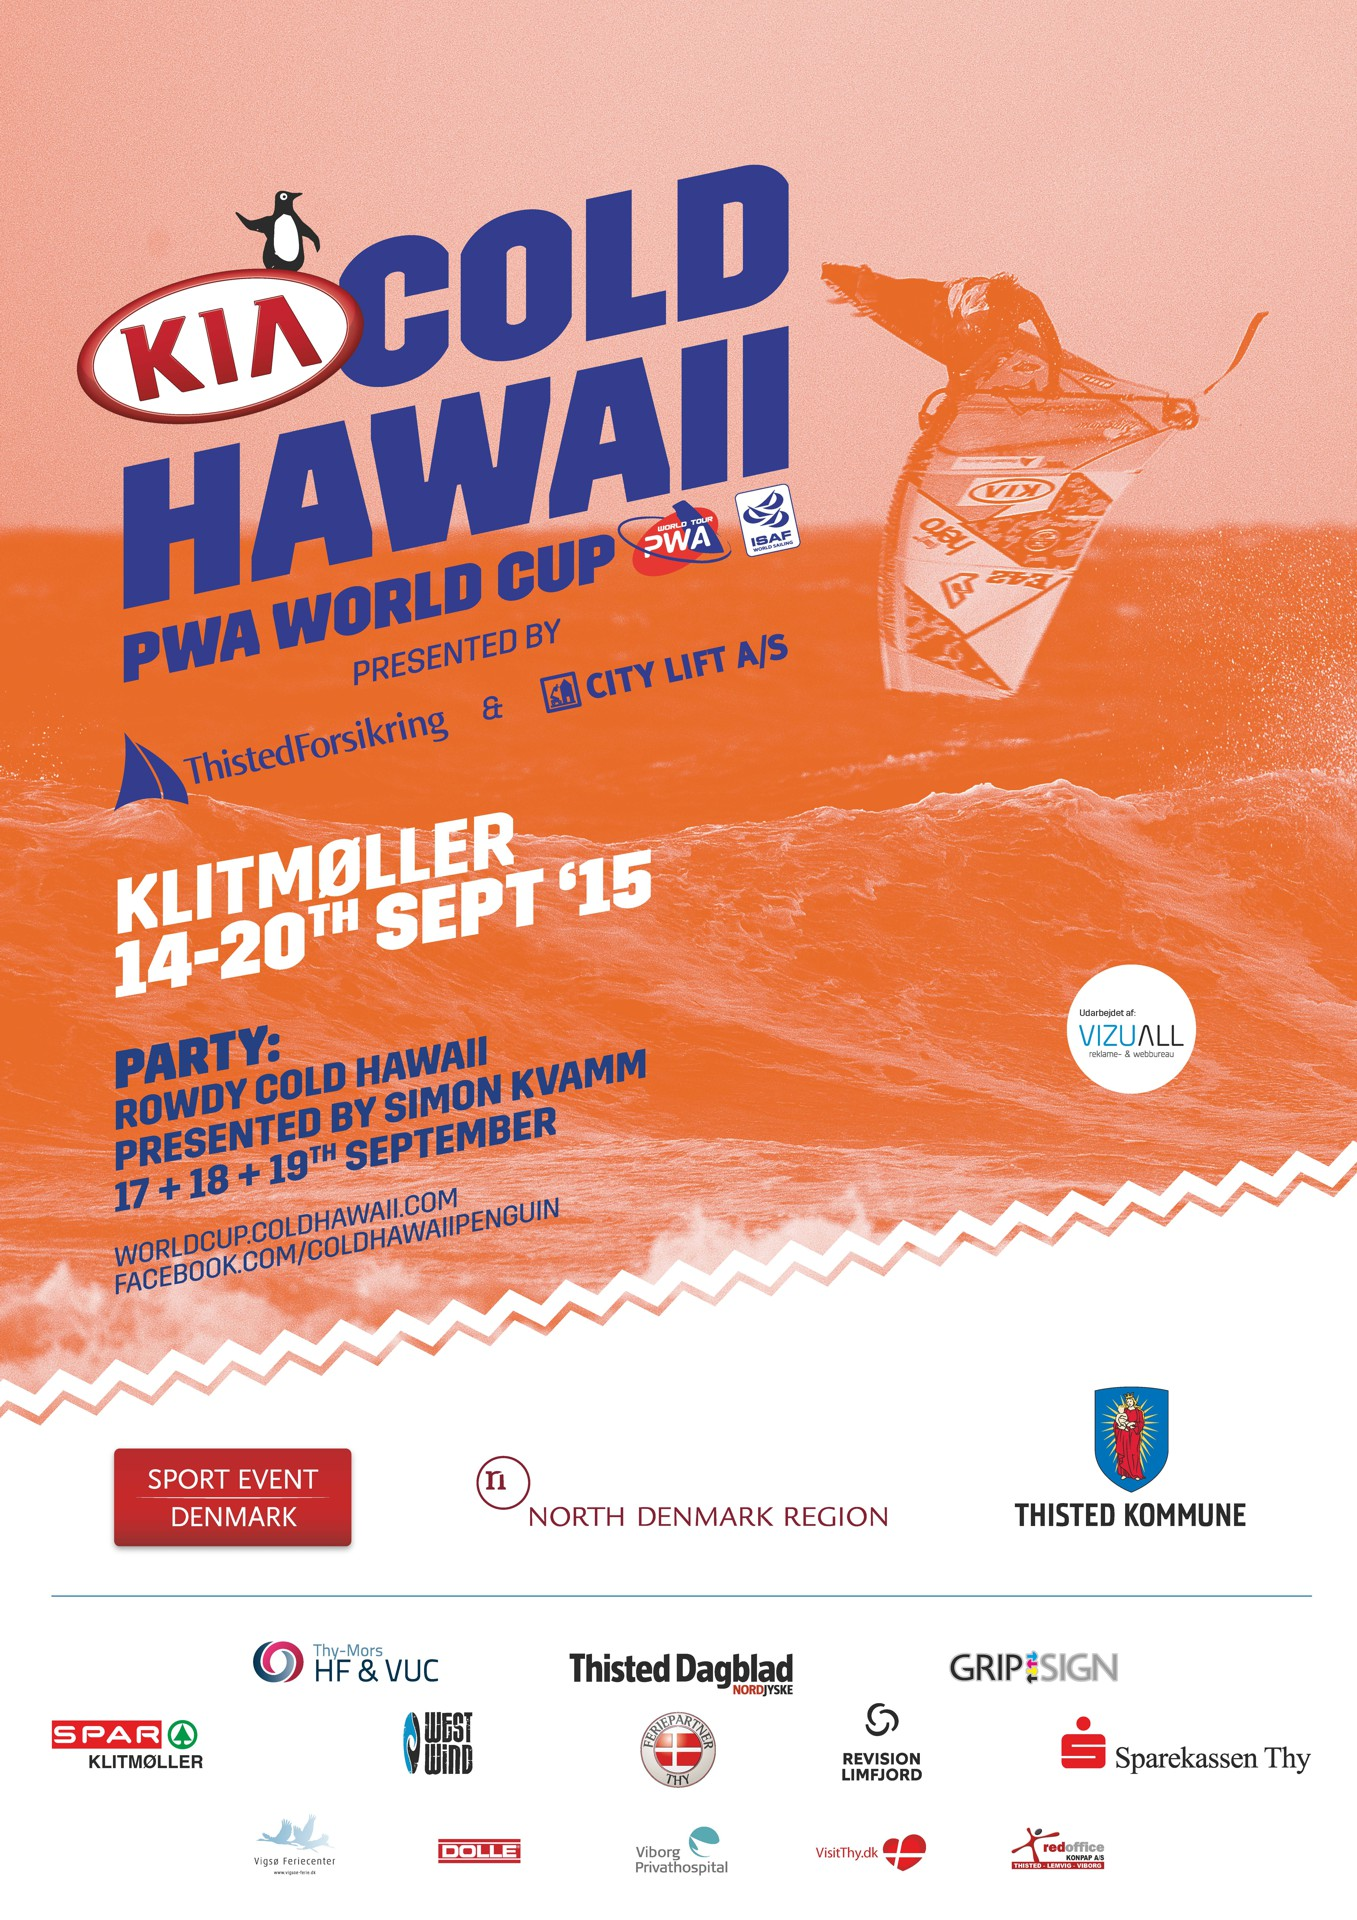 Kia Cold Hawaii World cup, Klitmoller 2015